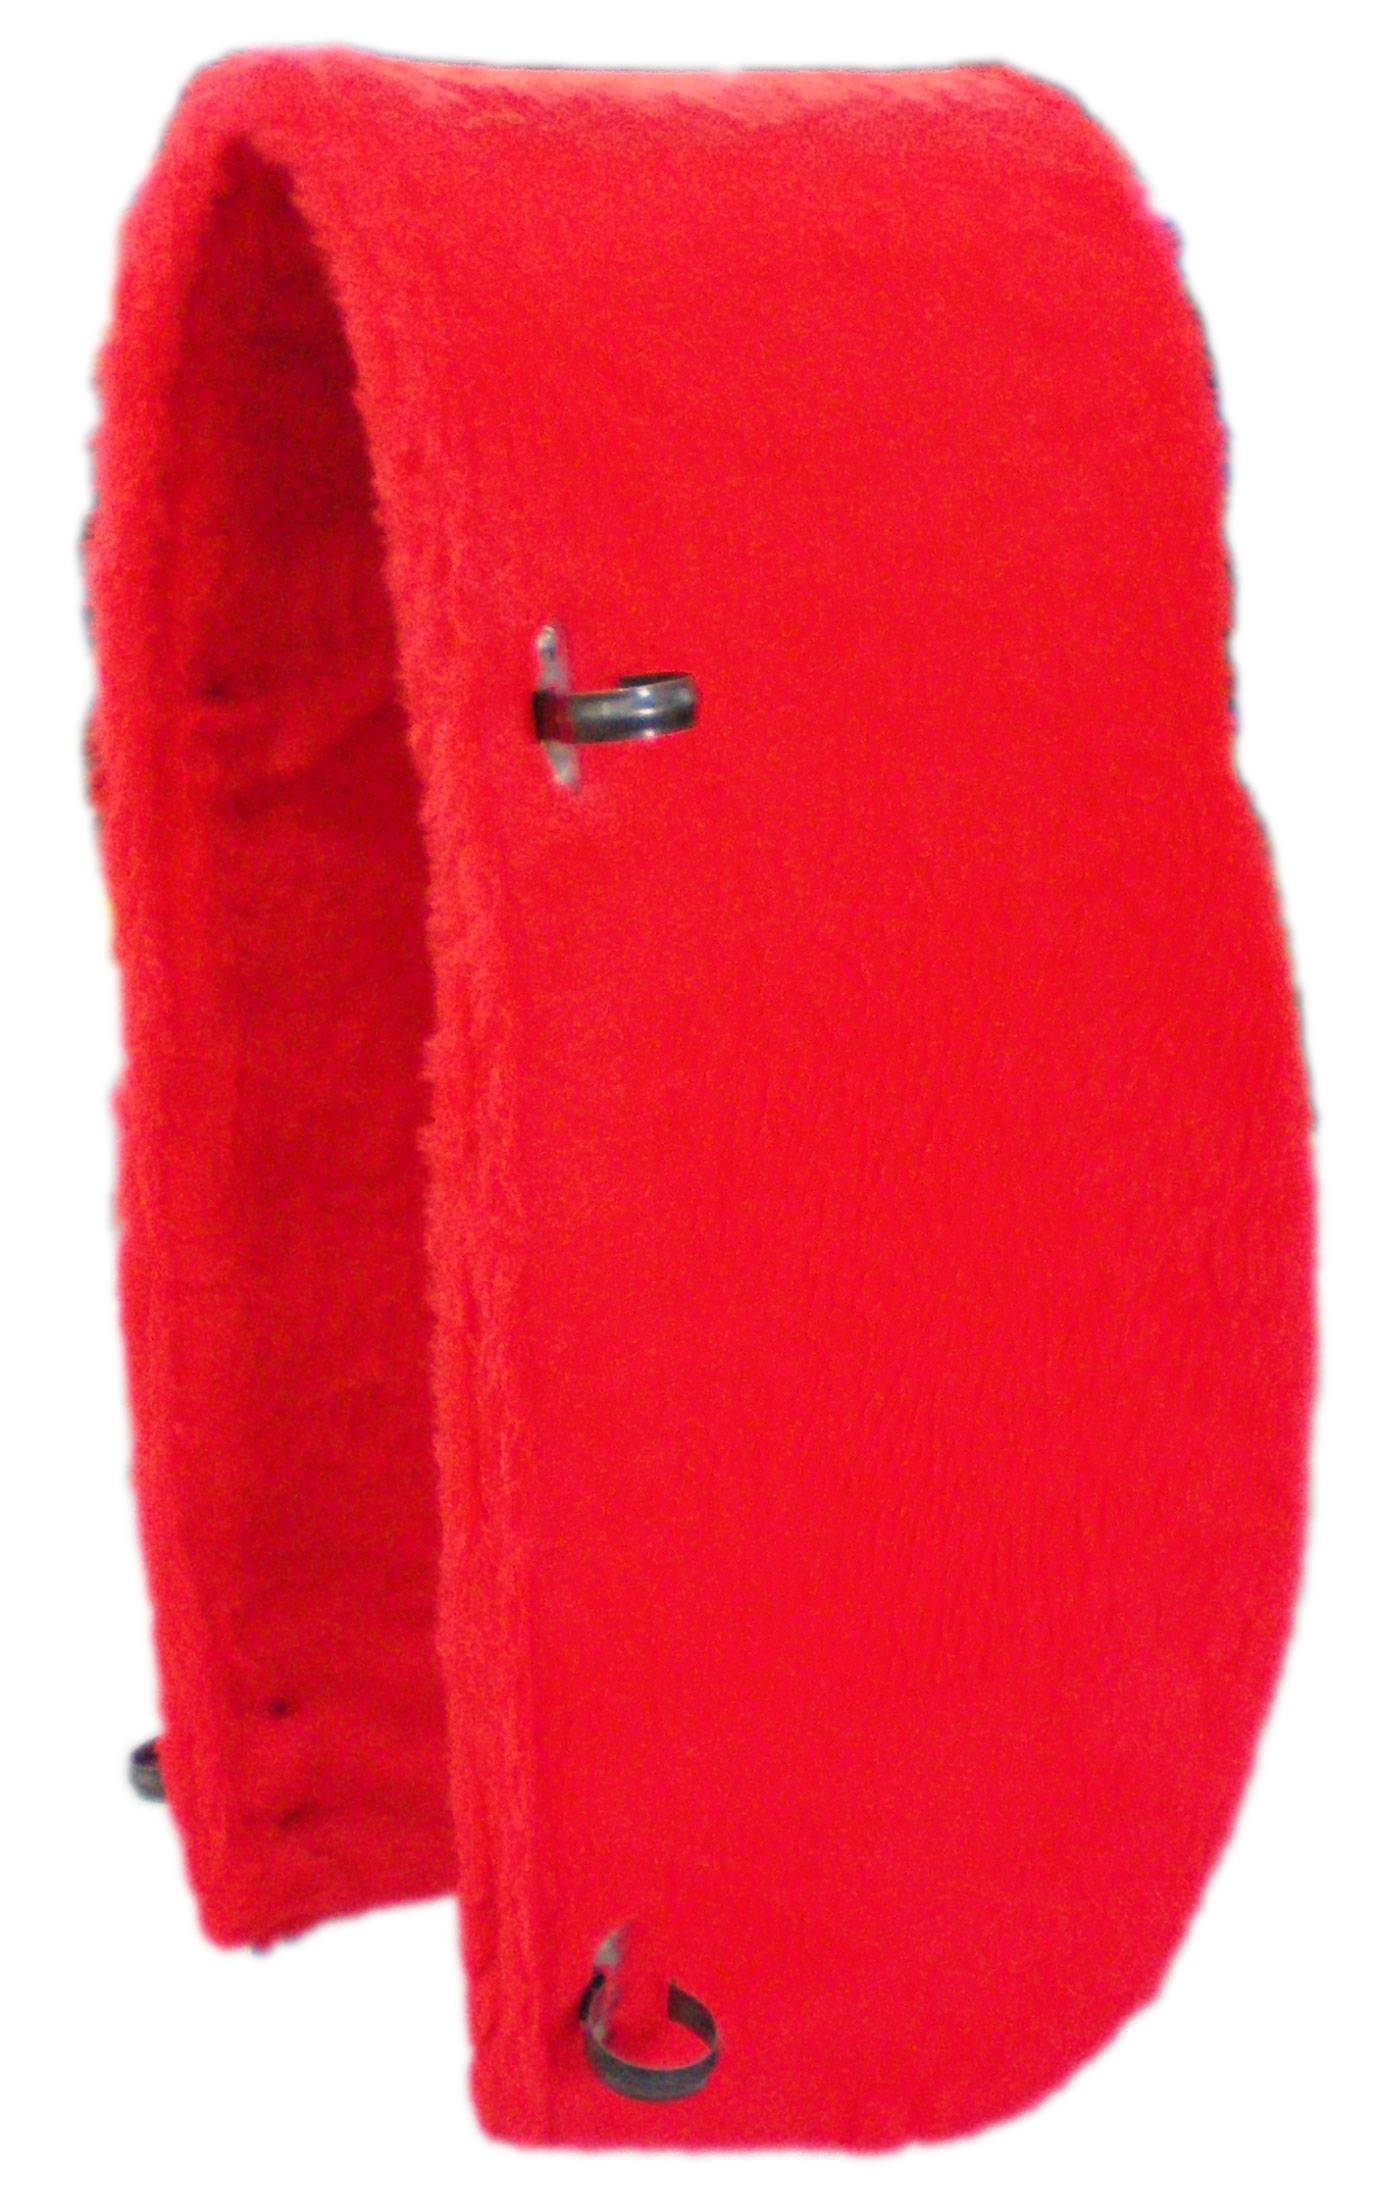 Extra Thick Draft Size Borg Coloured Sweat Pads